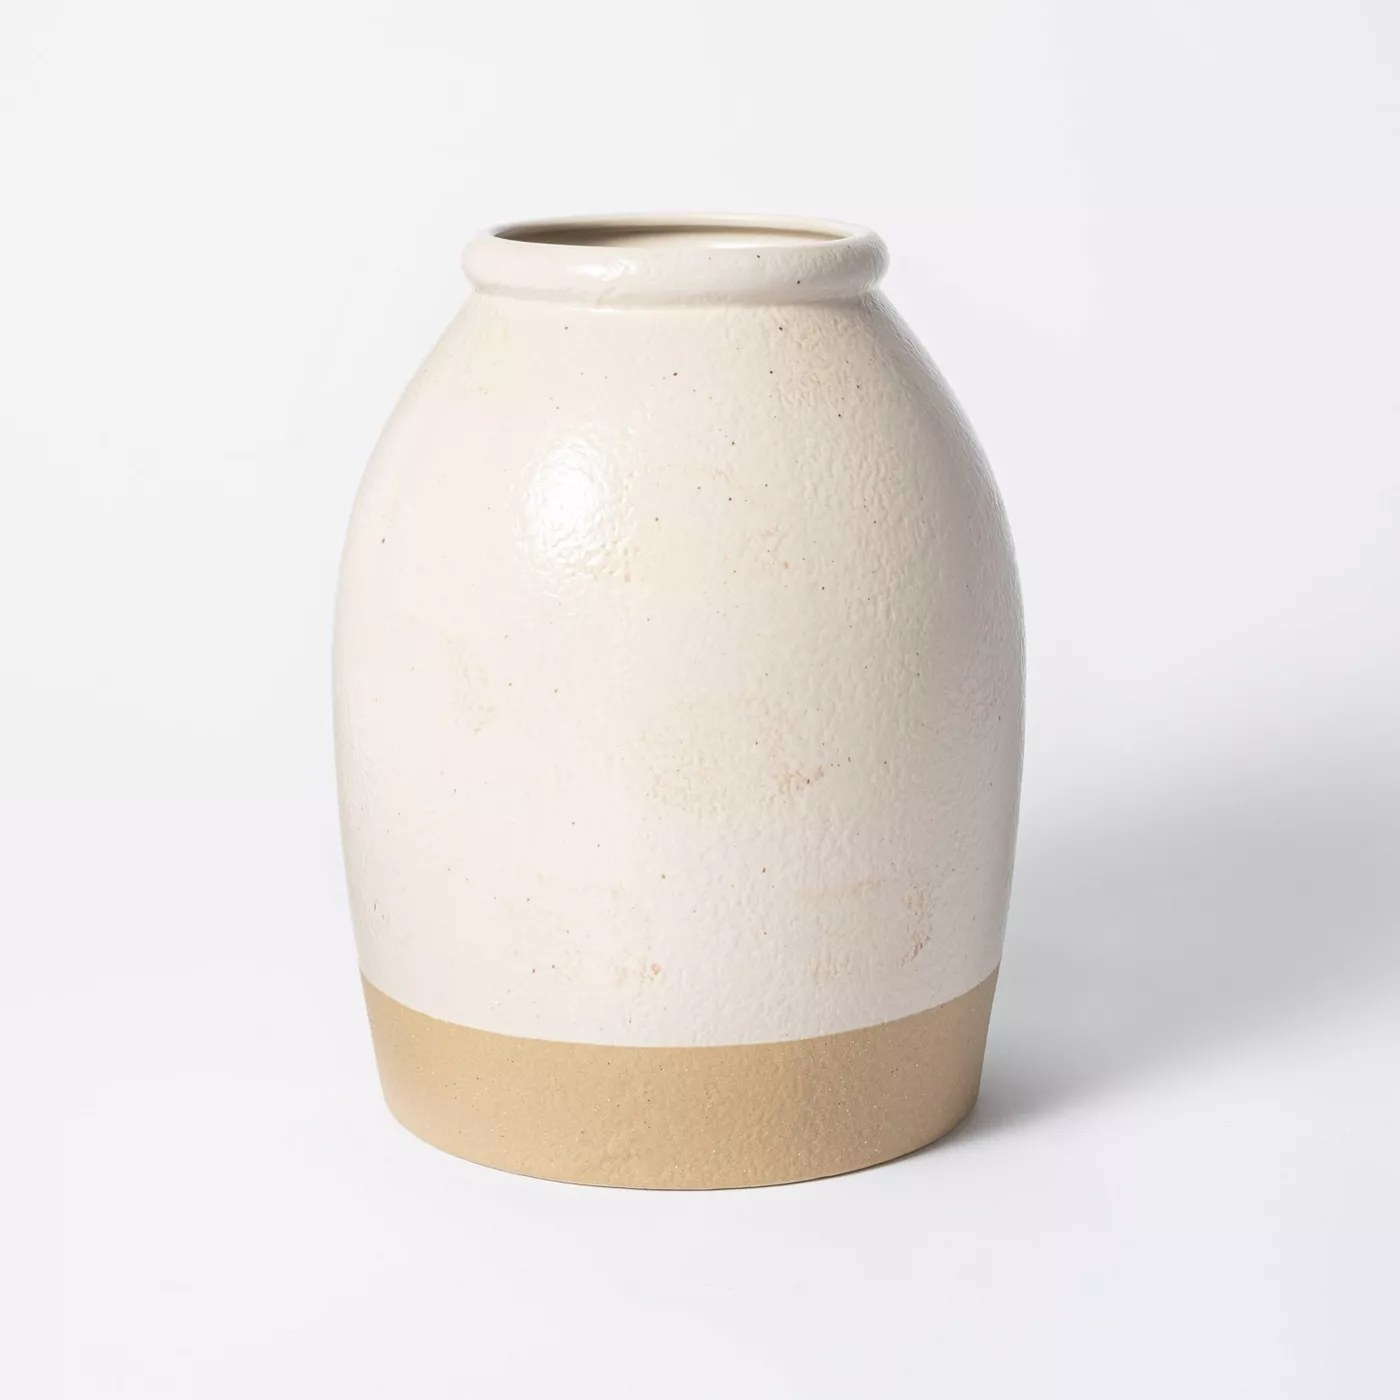 A close-up of the vase against a gray background